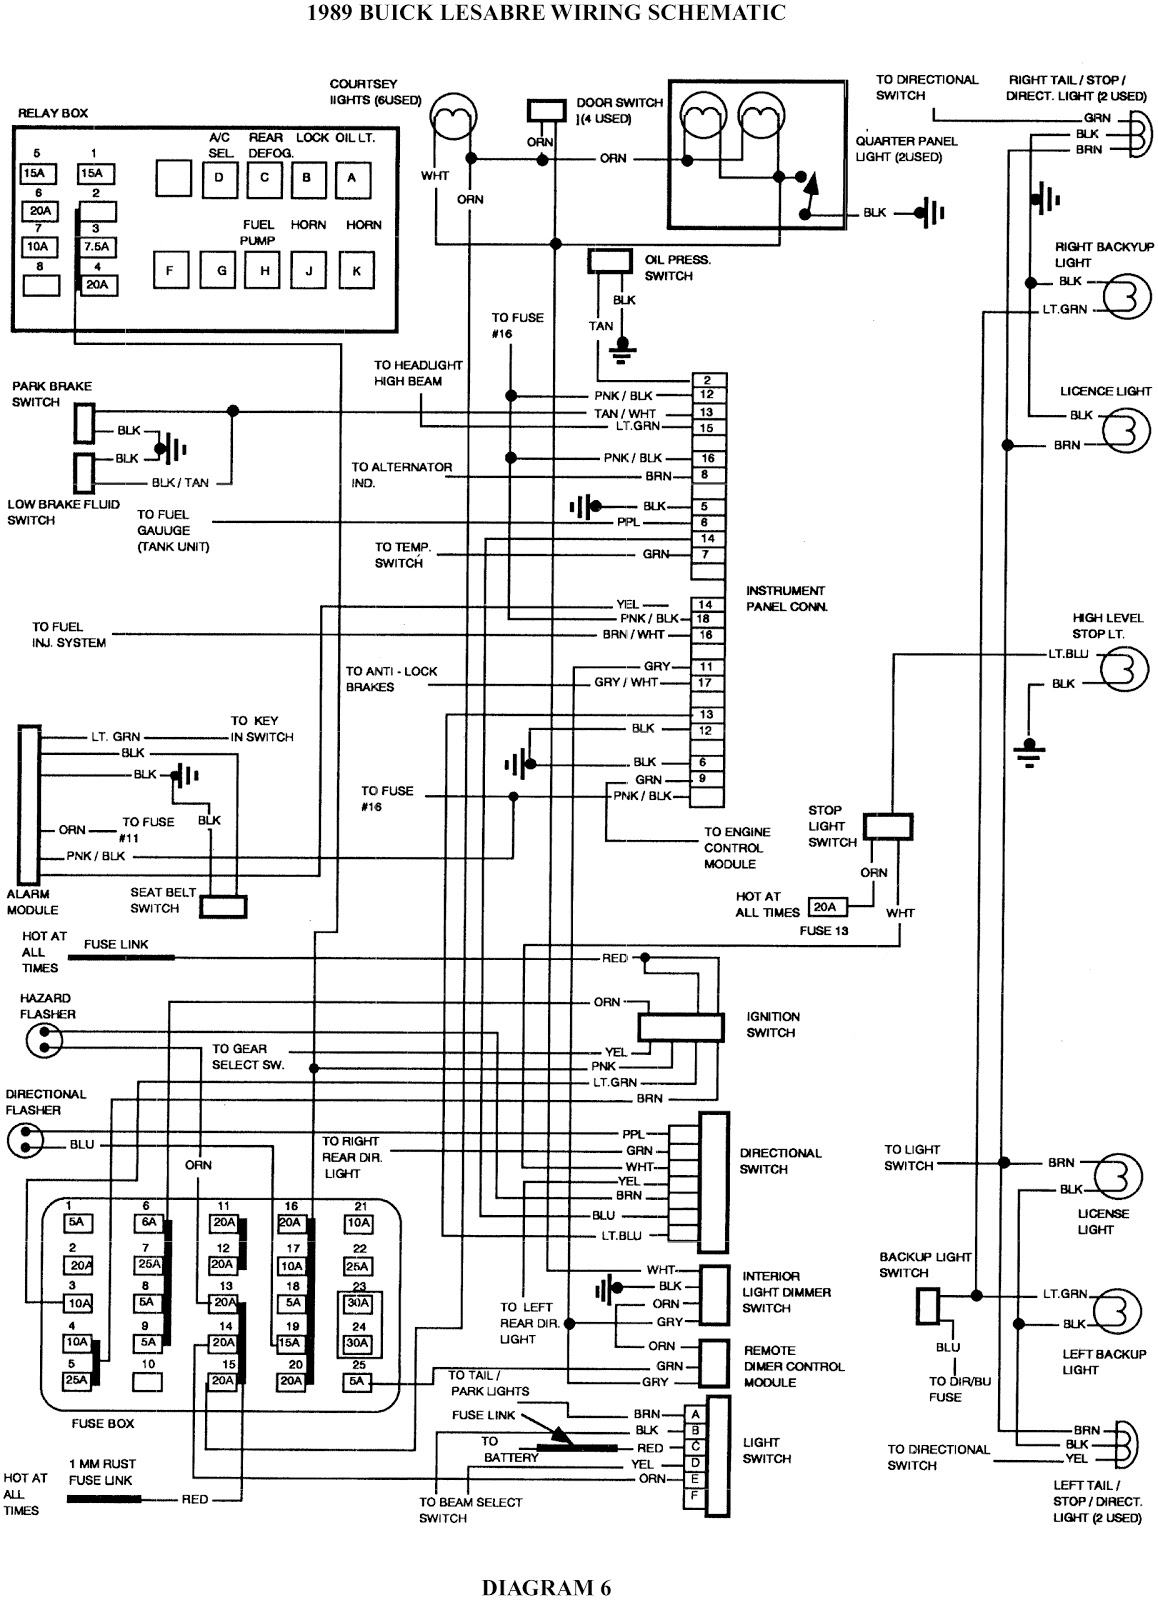 115 Yamaha Gauge Wiring Color Code Free Image About Wiring Diagram